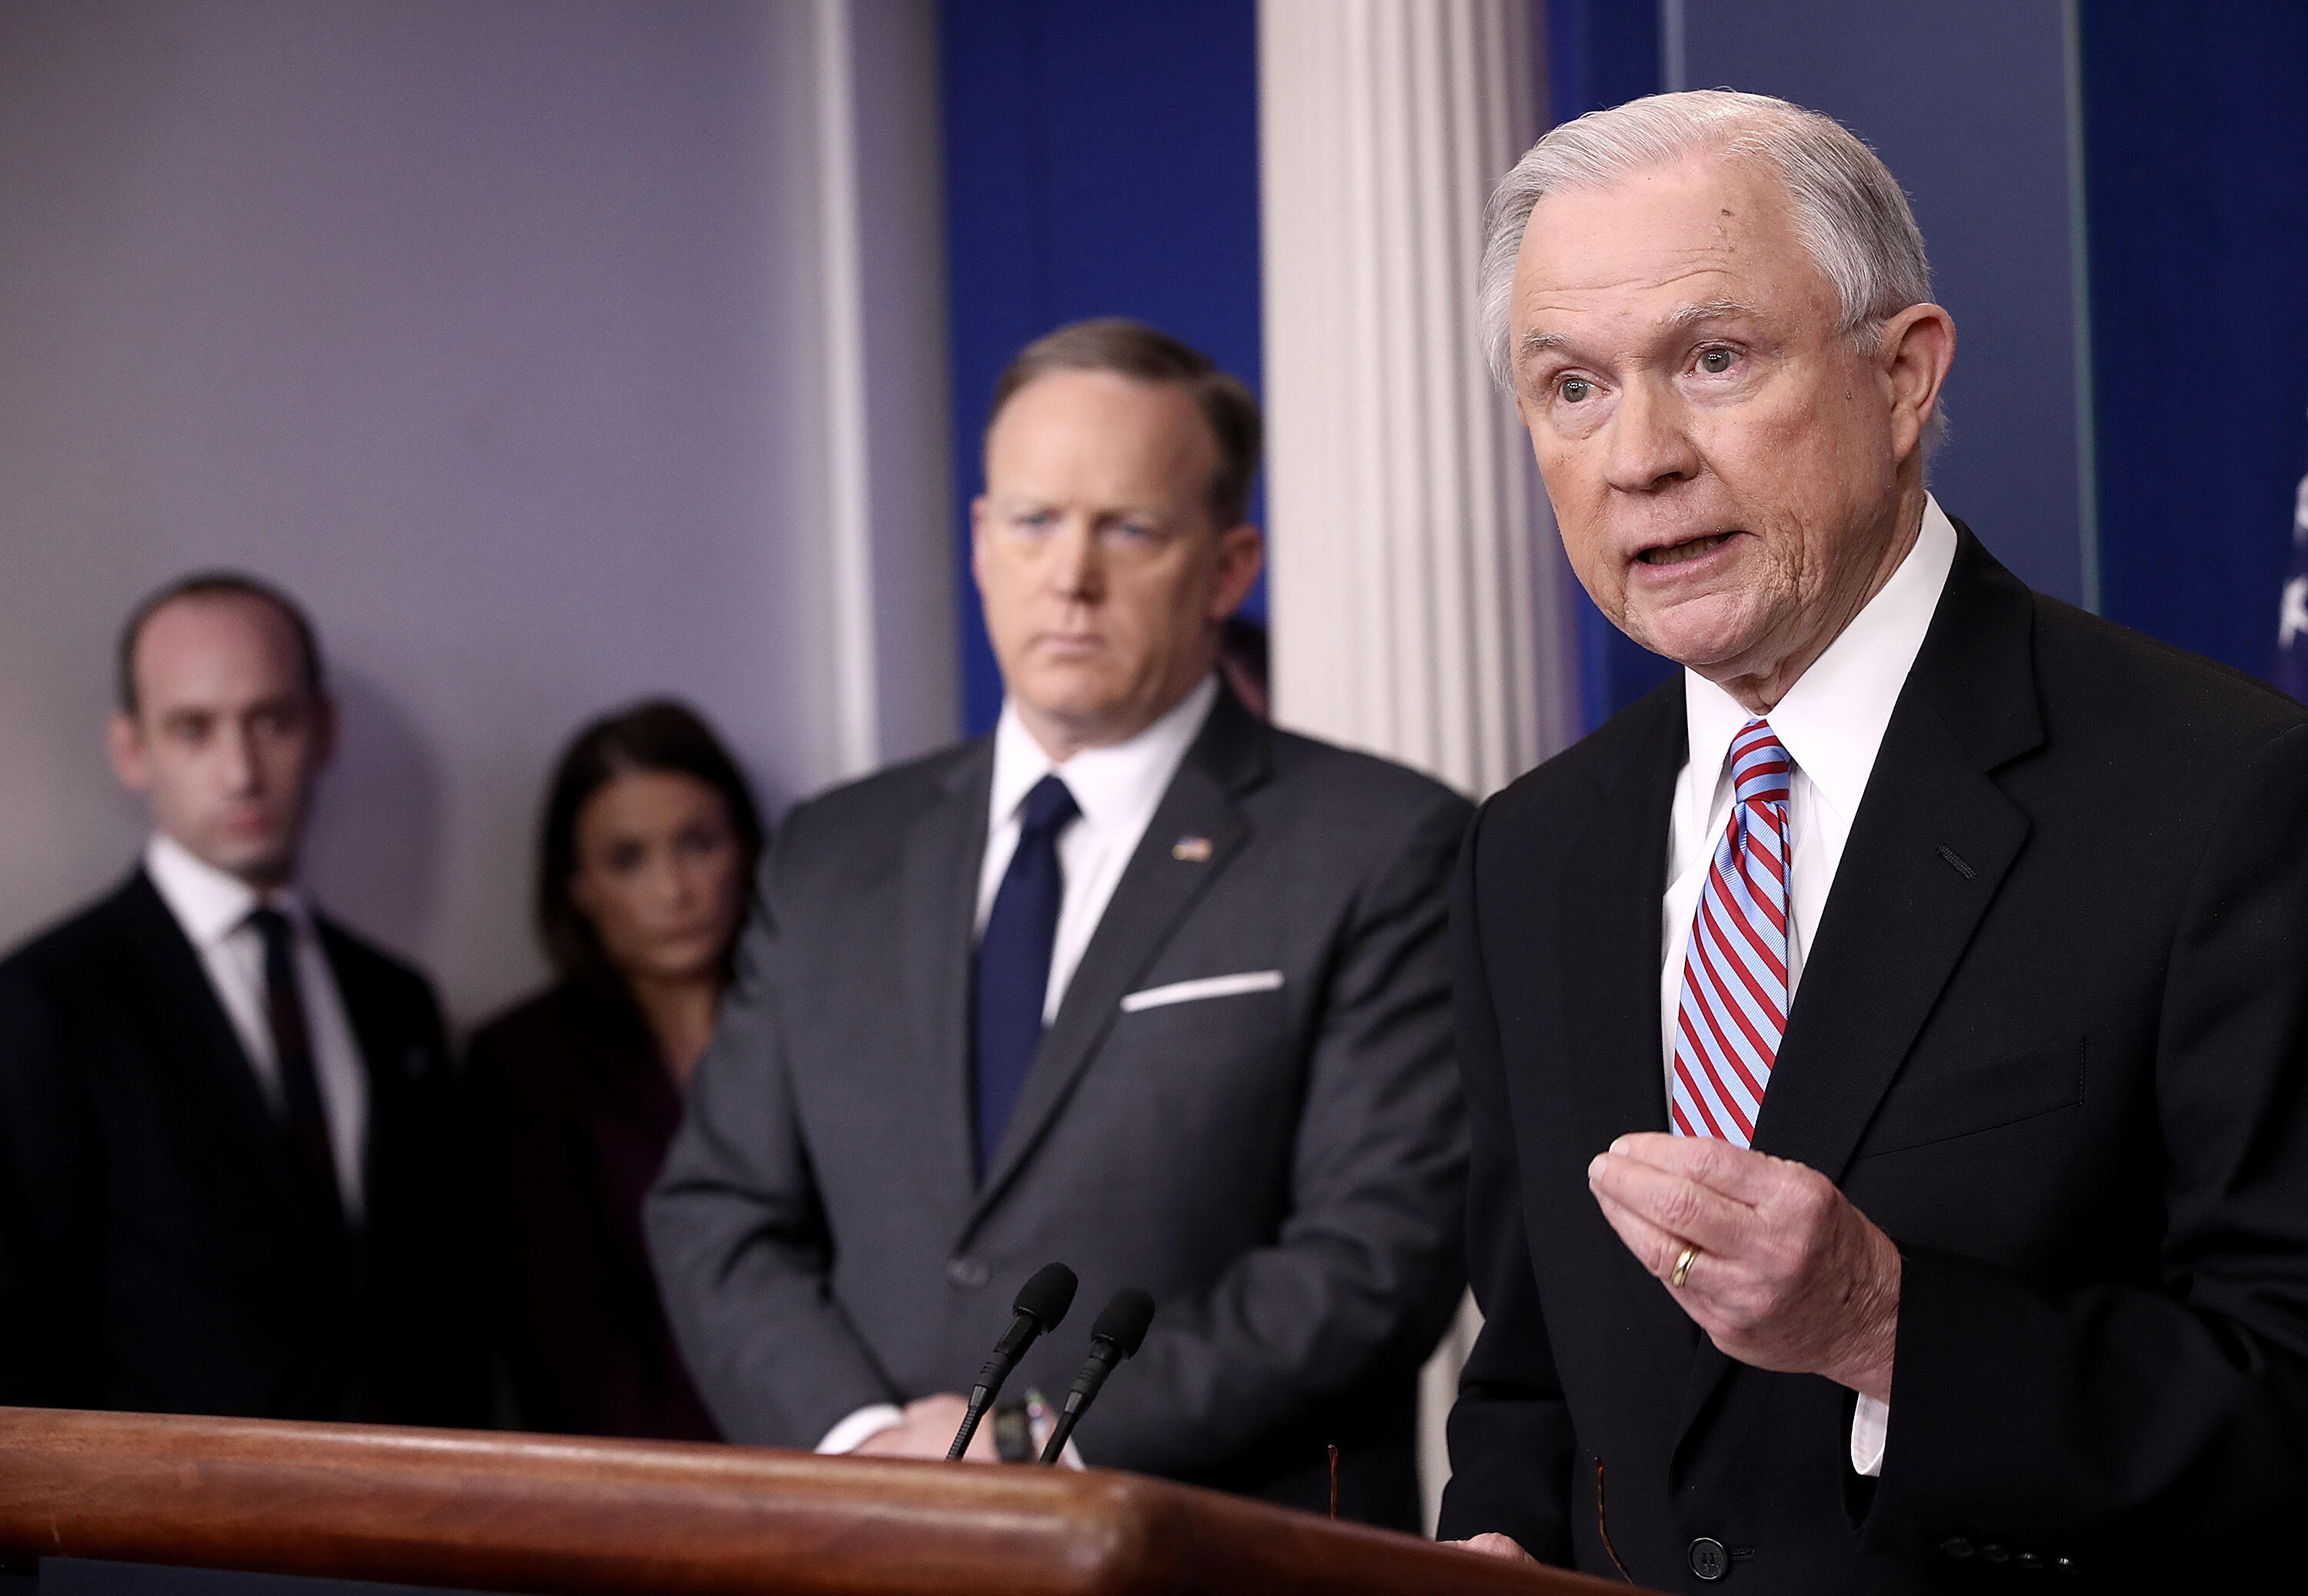 WASHINGTON, DC - MARCH 27:  U.S. Attorney General Jeff Sessions (R) delivers remarks during the daily White House press briefing March 27, 2017 in Washington, DC. Sessions announced new actions against sanctuary cities that seek Justice Department grants